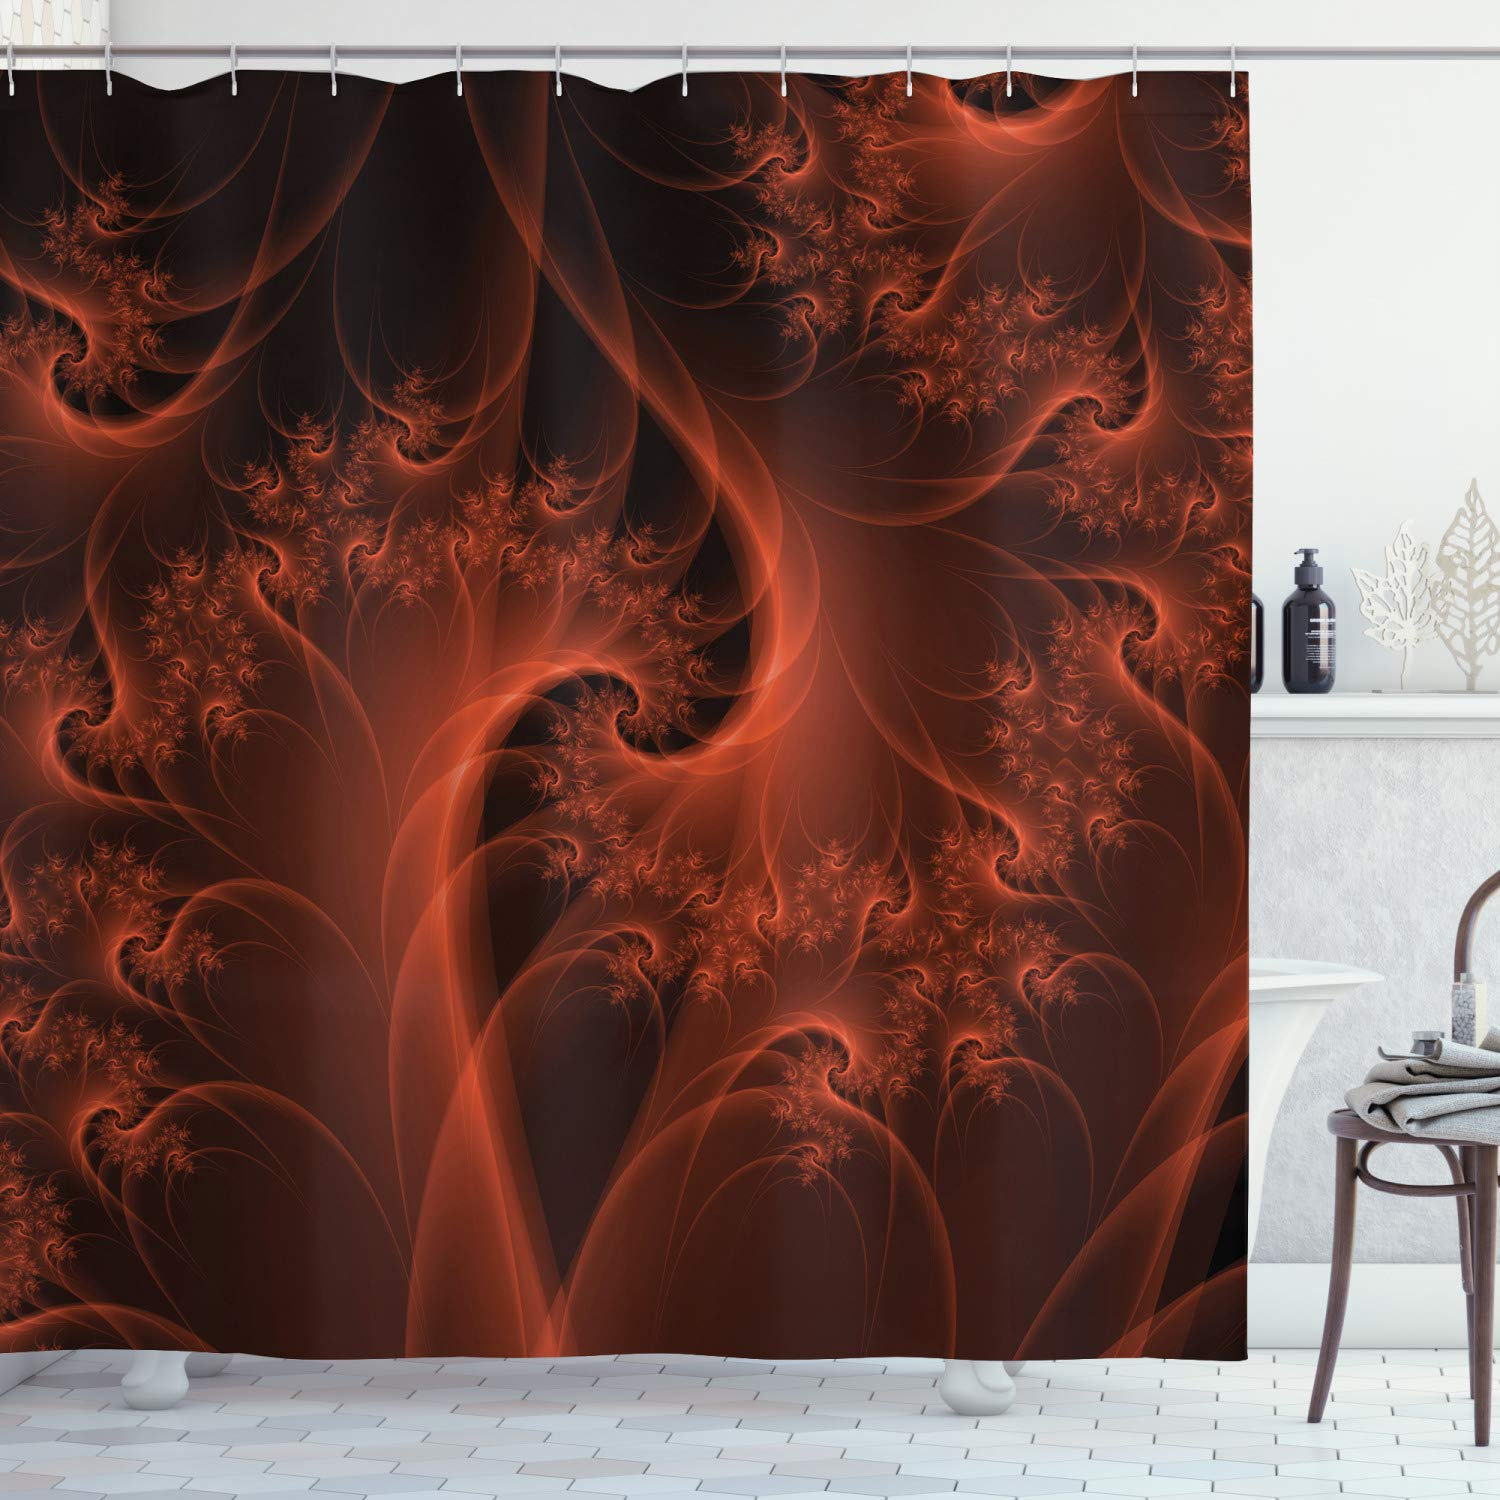 Ambesonne Burnt Orange Shower Curtain Digital Fractal Image With Swirling Turning Moving Floral Lines Modern Graphic Cloth Fabric Bathroom Decor Set With Hooks 84 Long Extra Burnt Orange